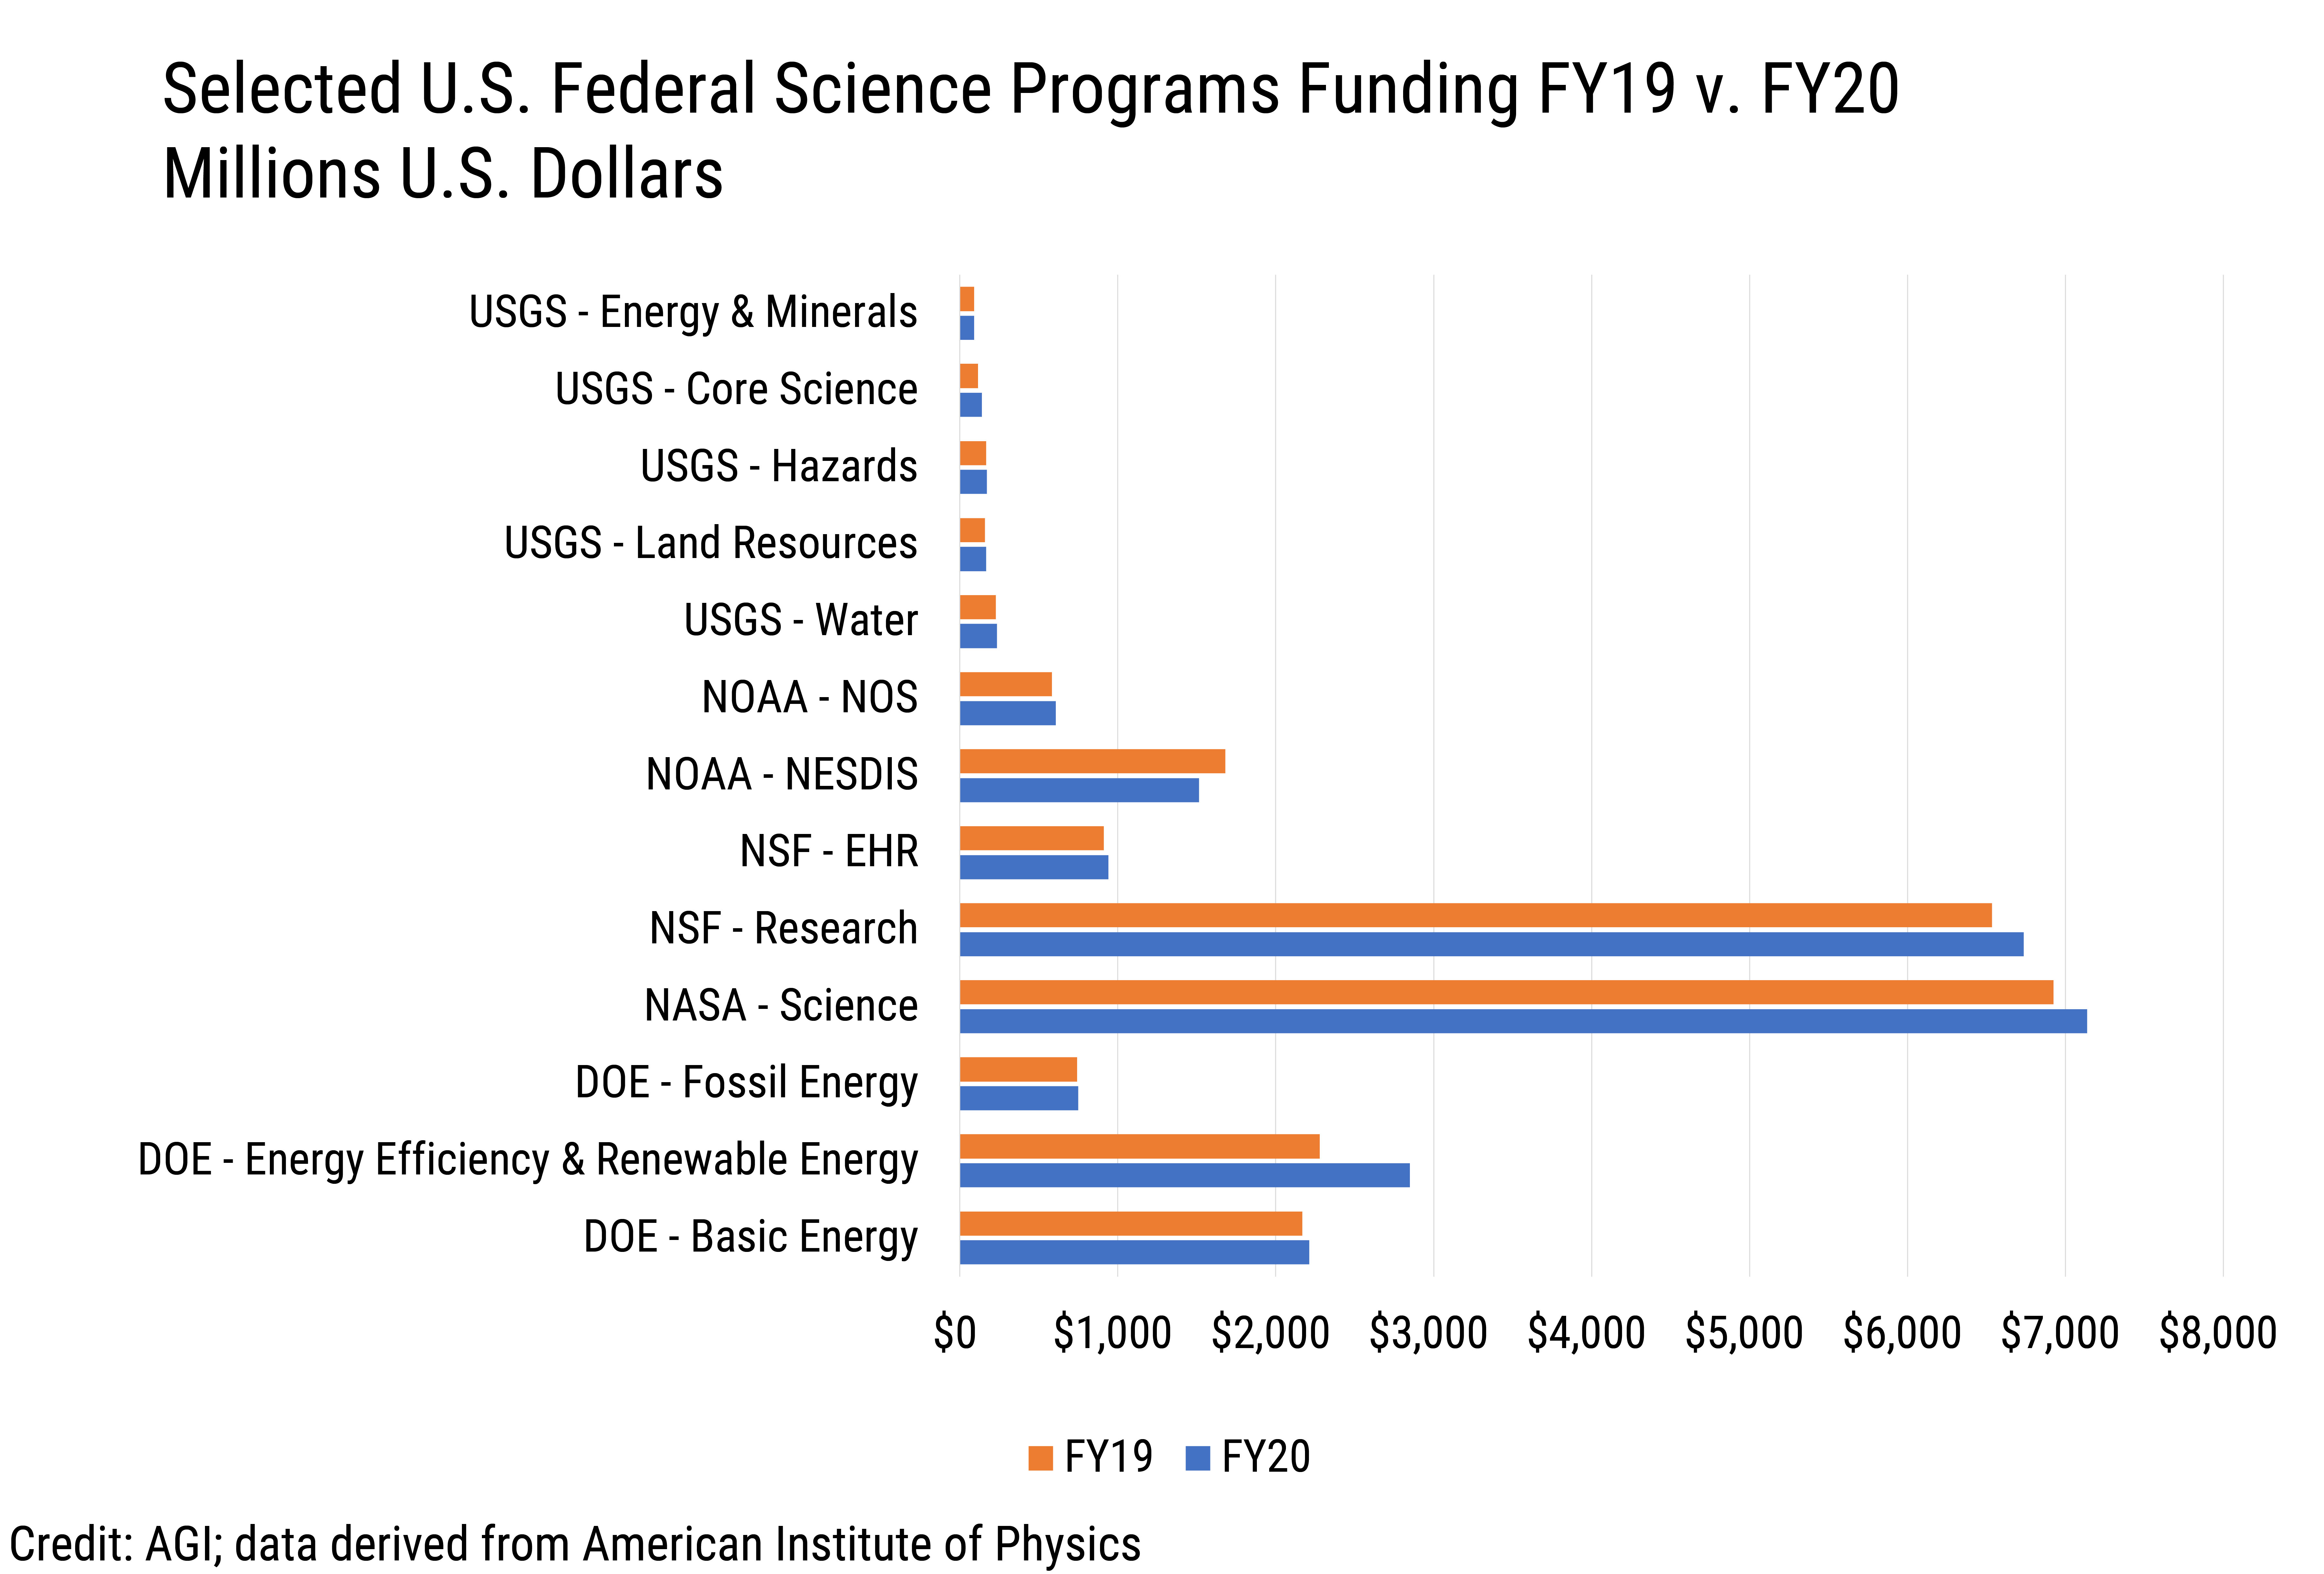 Data Brief 2020-002 chart 02: Selected U.S. Federal Science Programs Funding FY19 vs. FY20 (credit: AGI; data derived from the American Institute of Physics)